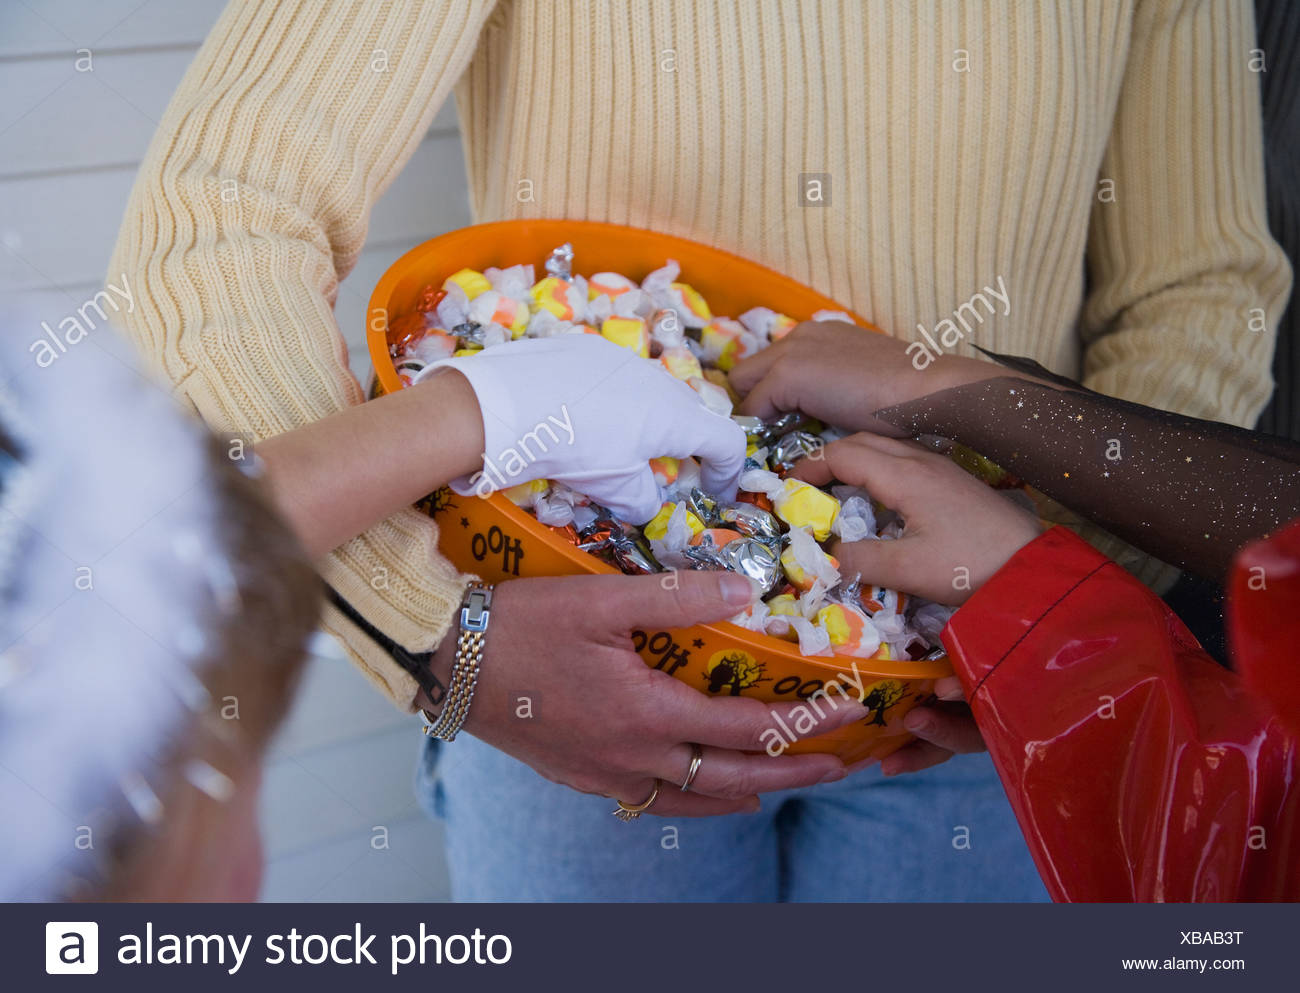 Children in Halloween costumes reaching into bowl of candy - Stock Image